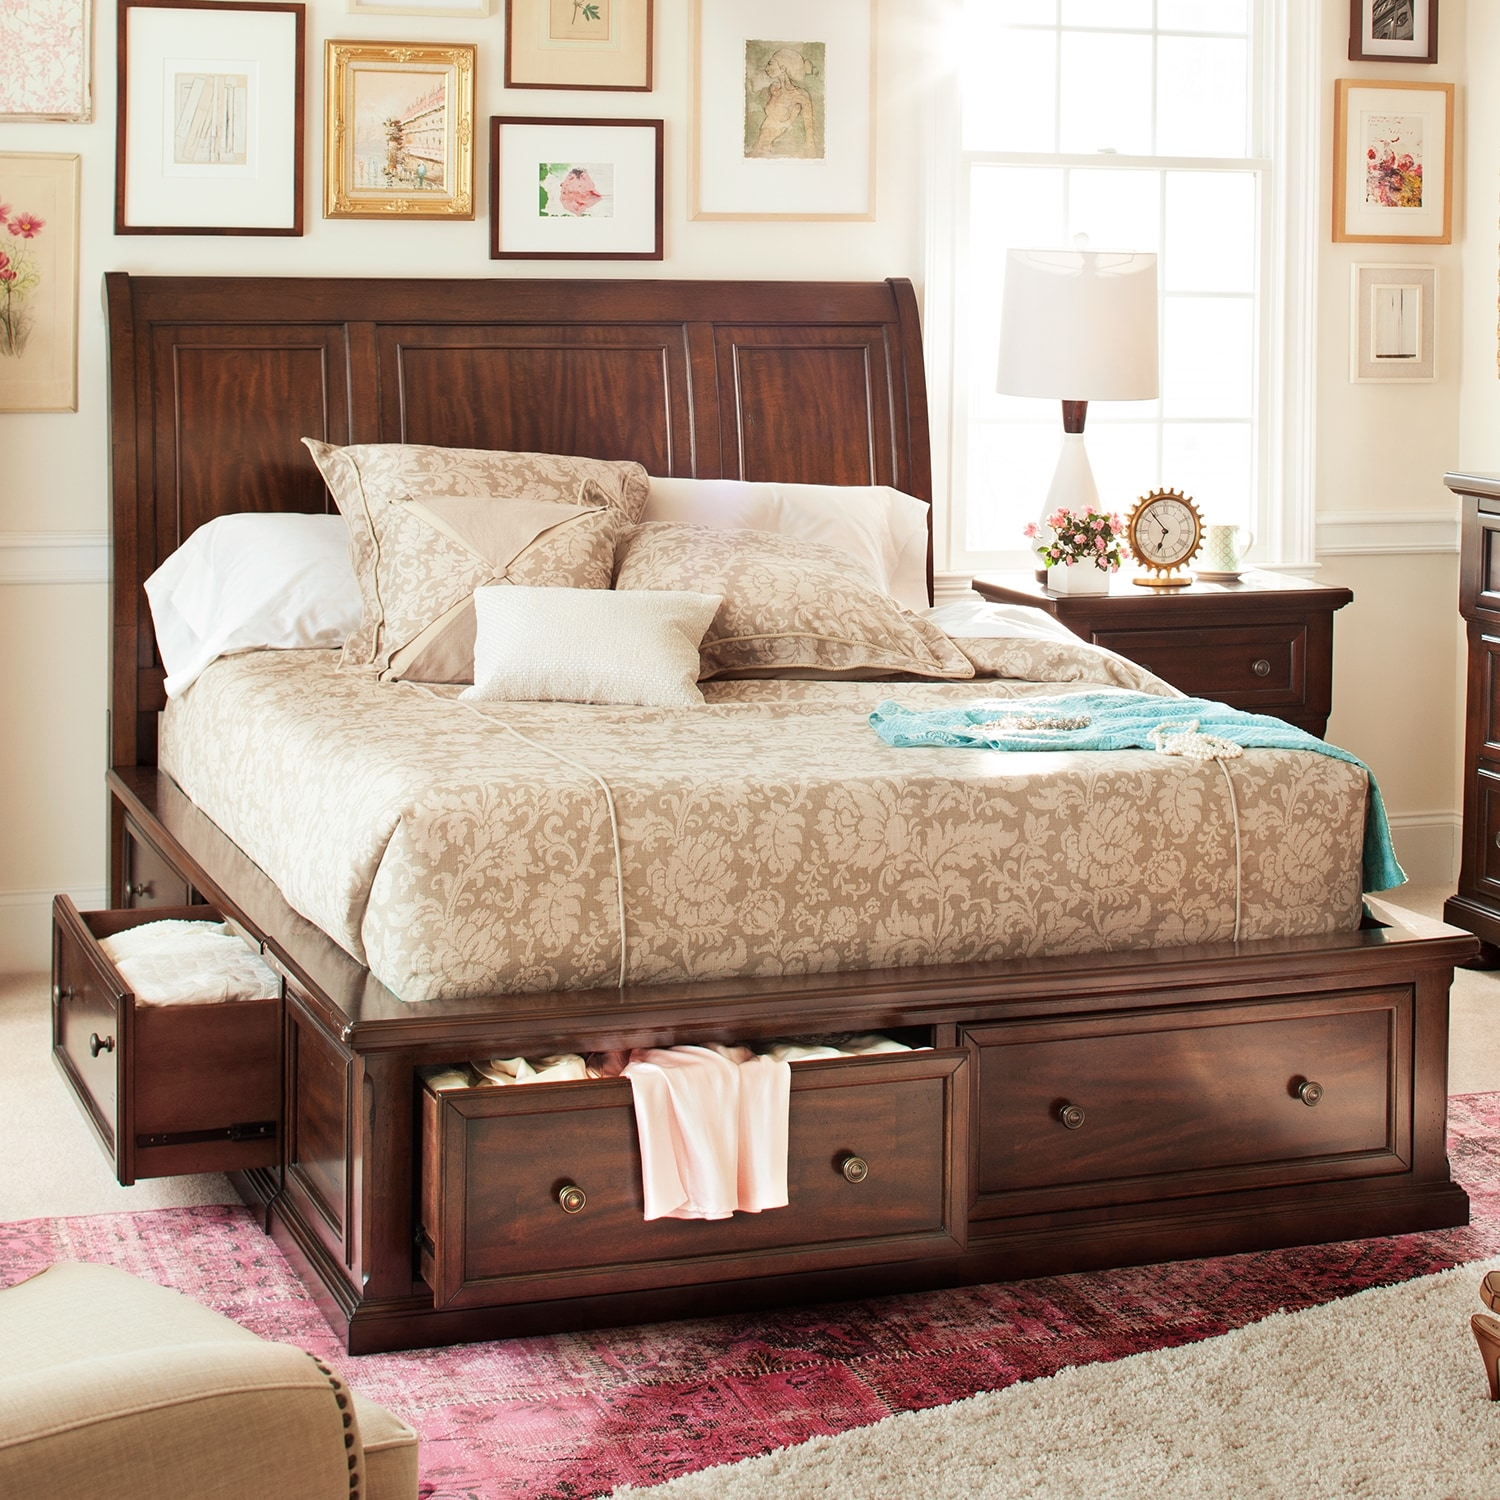 Hanover Queen Storage Bed Cherry Value City Furniture